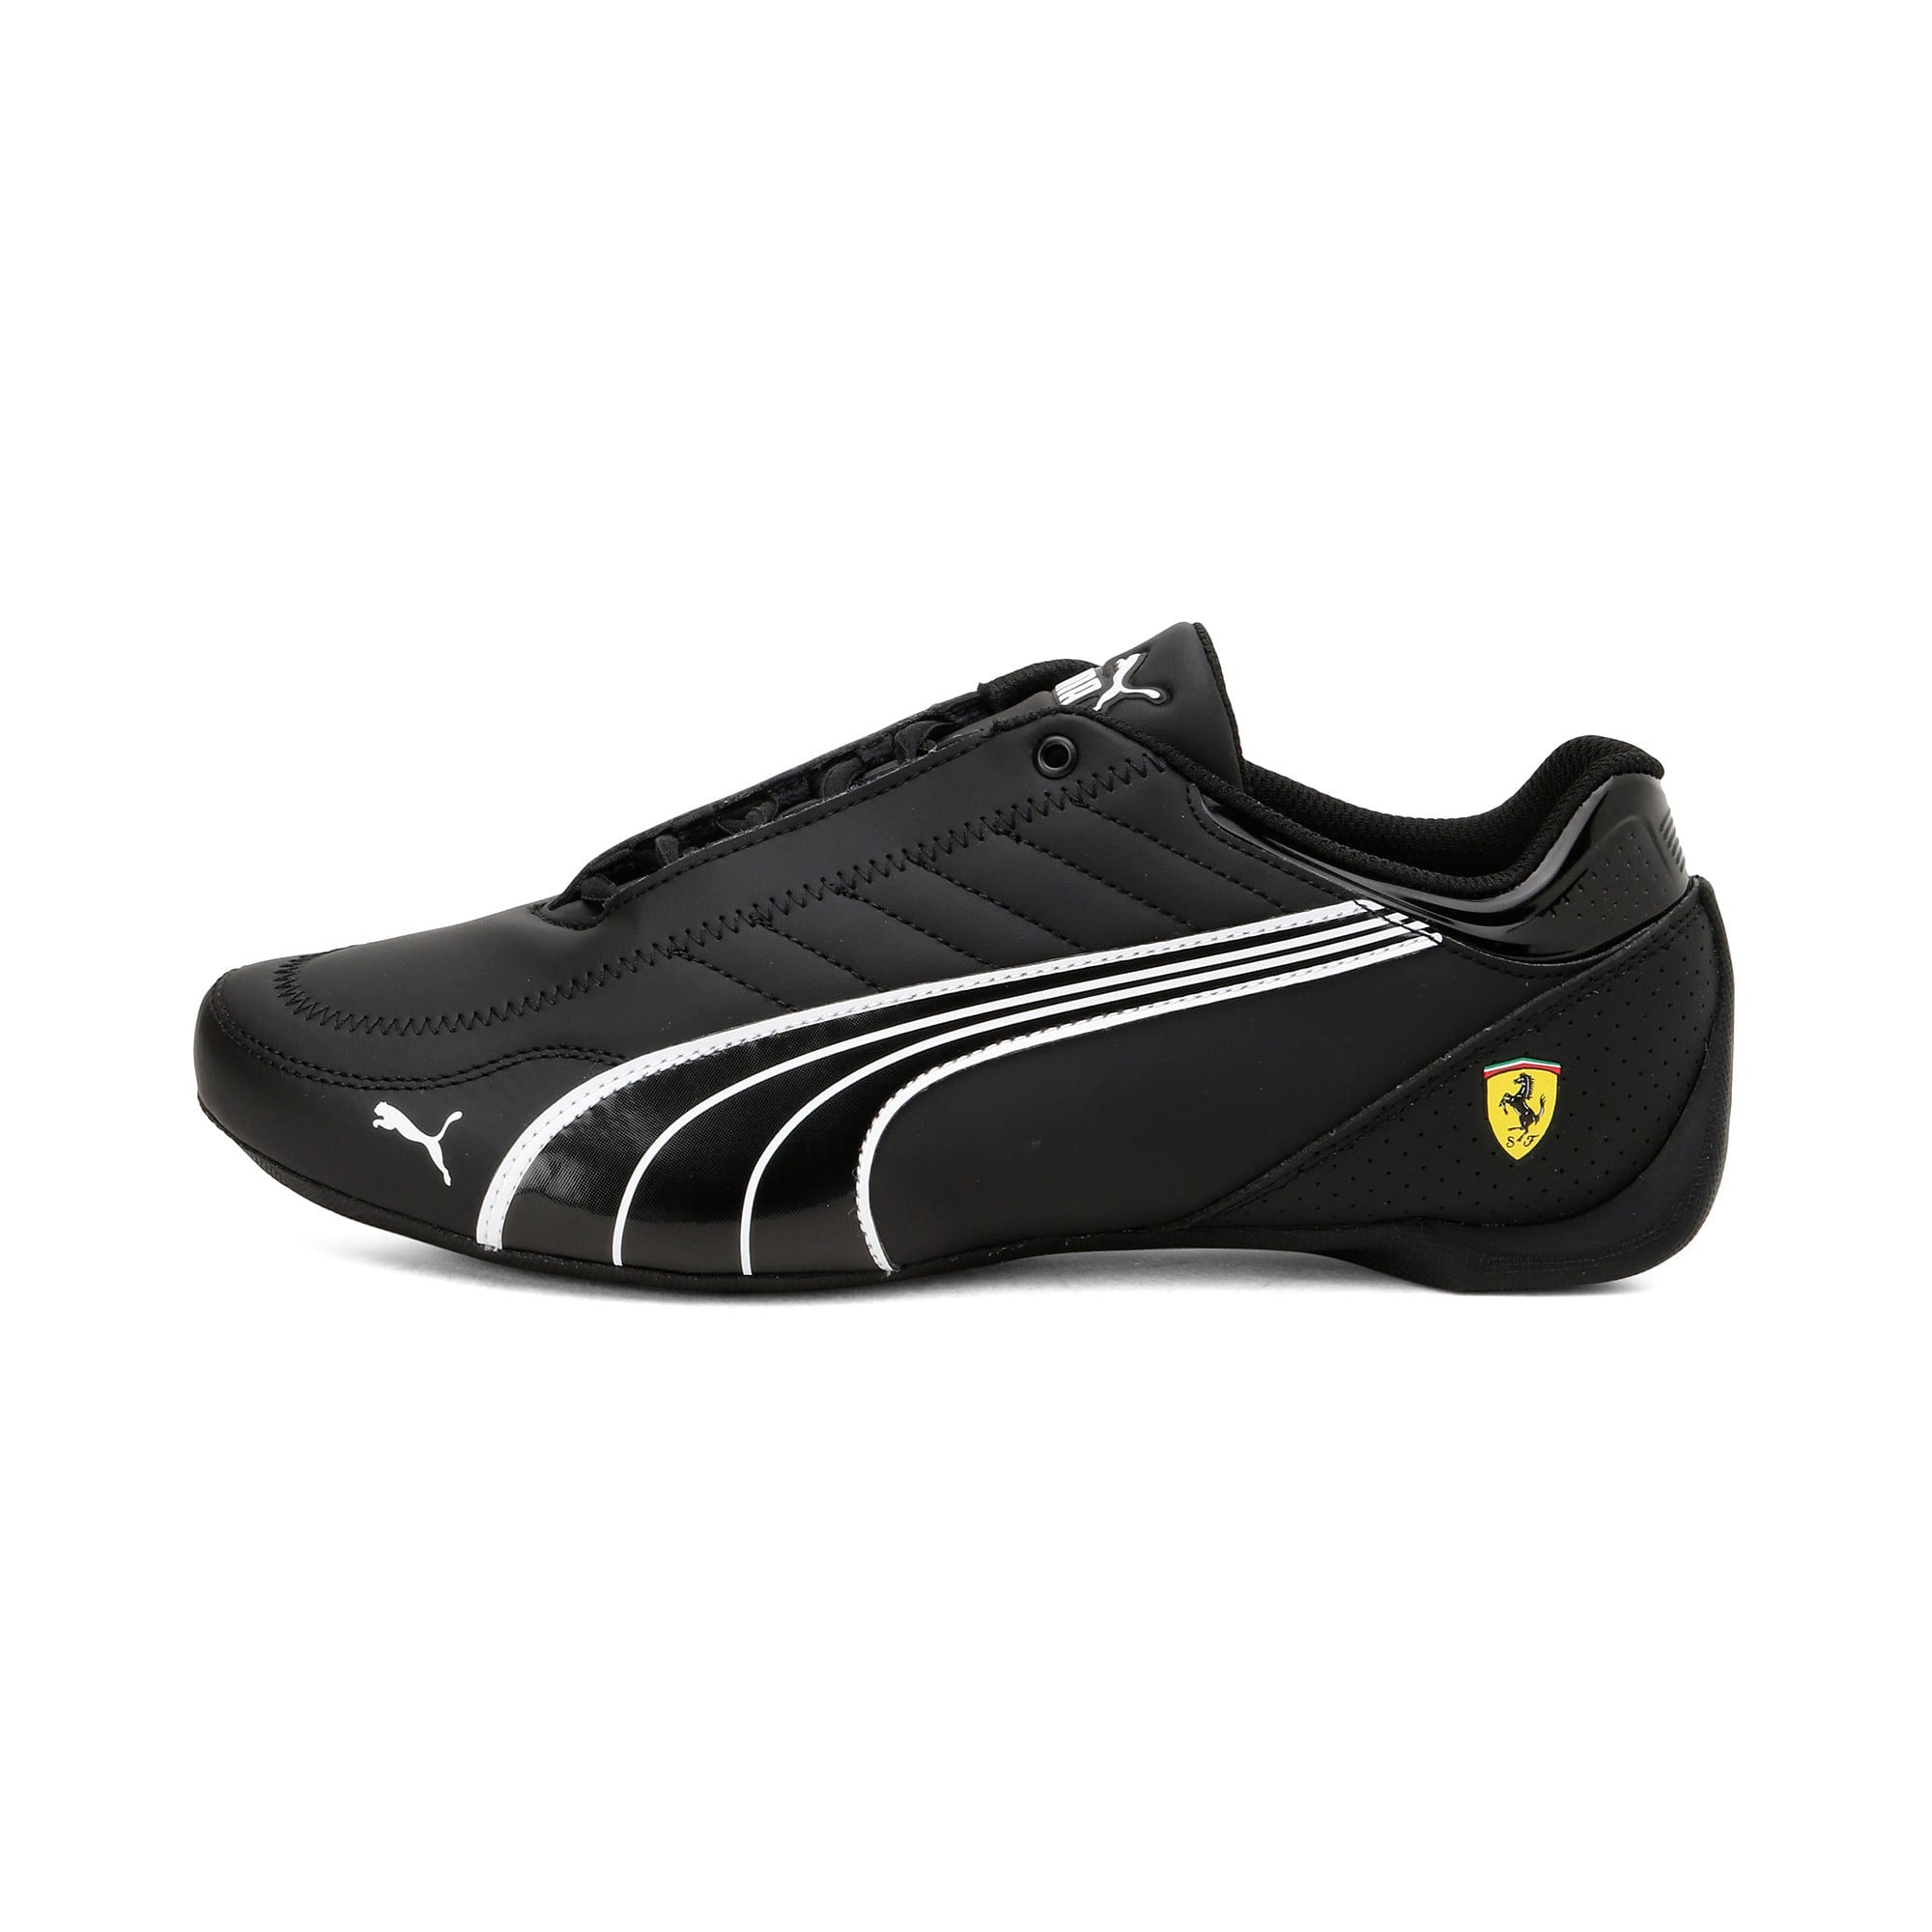 Thumbnail 1 of Ferrari Future Kart Cat Trainers, Black-Puma White-Rosso Corsa, medium-IND